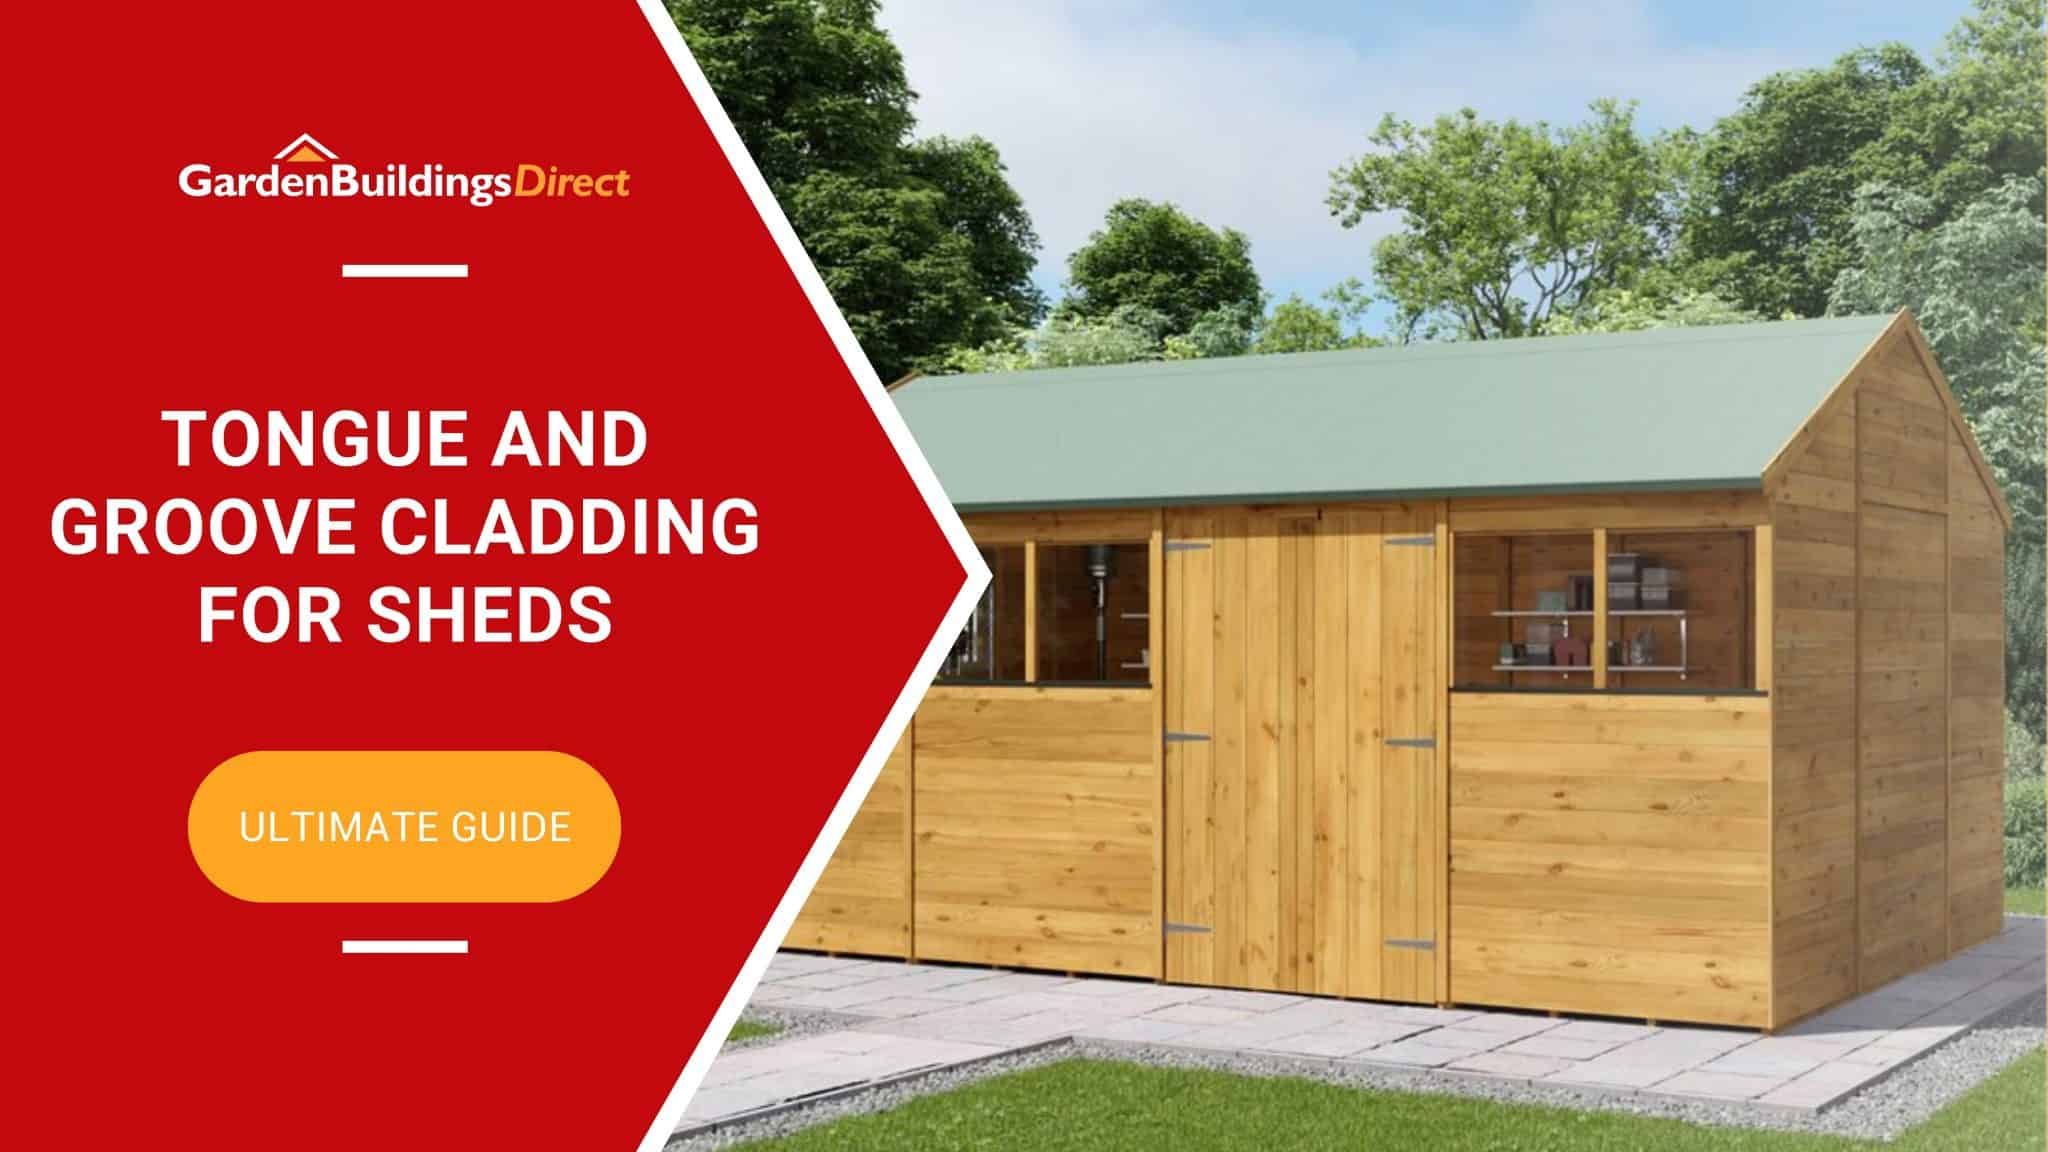 tongue and groove cladding for sheds ultimate guide banner on red background with garden buildings direct logo and a wooden shed with a reverse apex roof on paving slabs in a garden